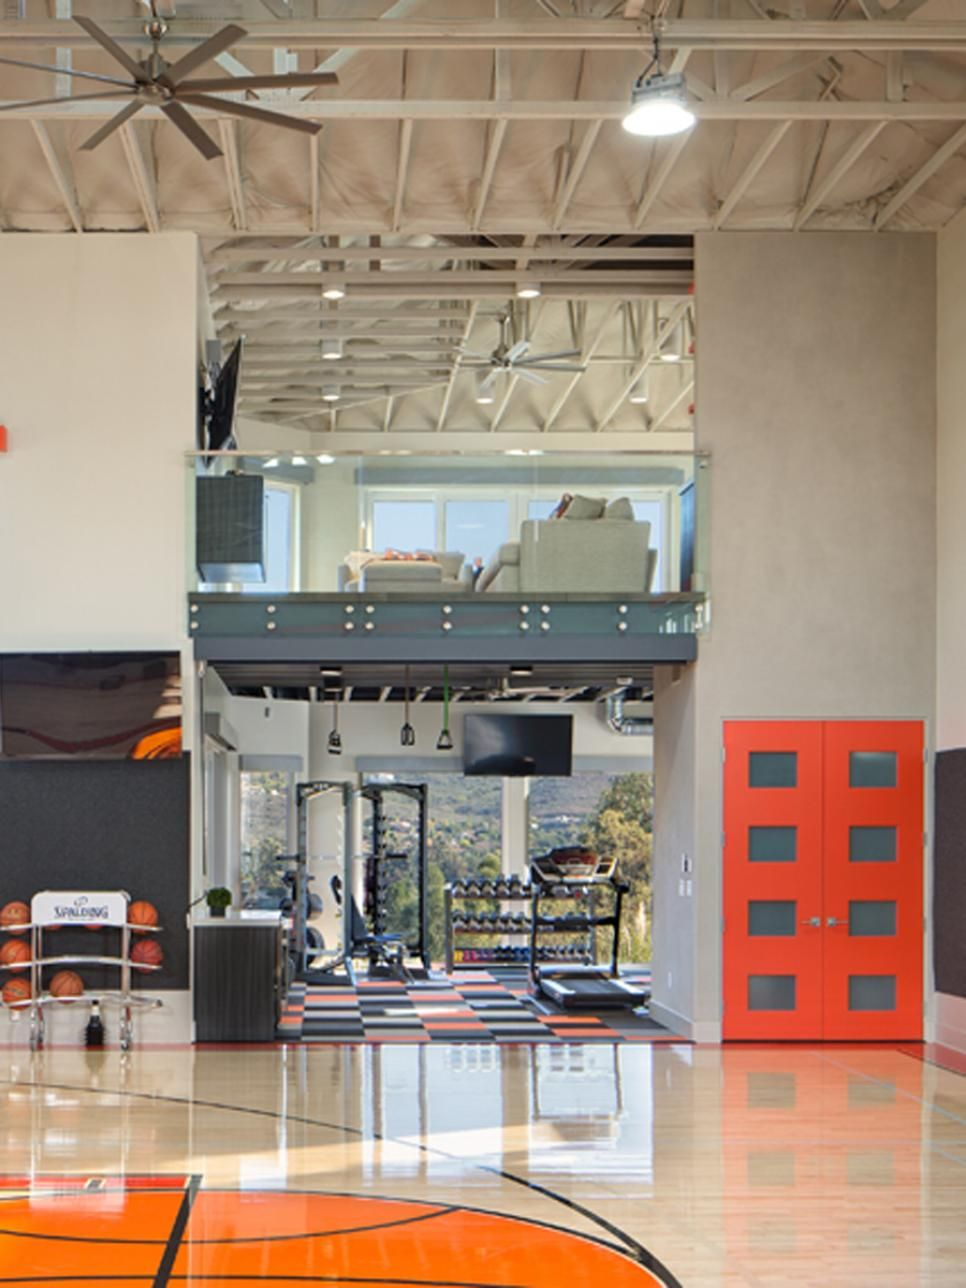 In This Private Basketball Court From Charco Design Build Charcoal Wall Padding And Polished Floors Ma Home Gym Design Home Basketball Court Basketball Room